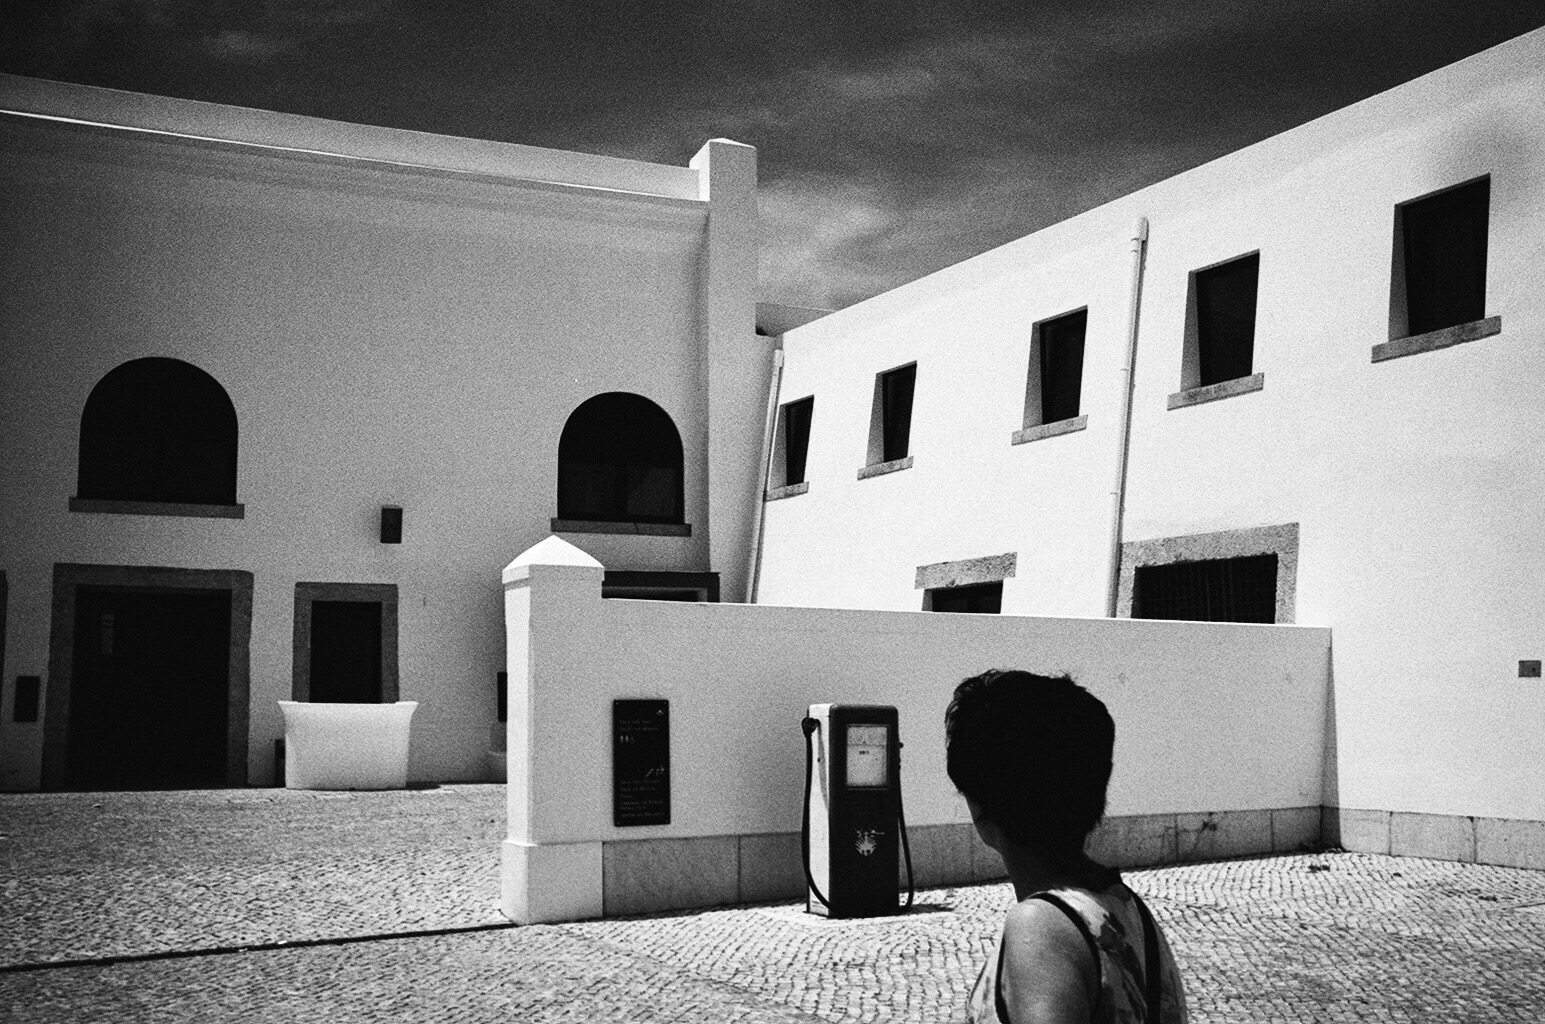 Portugal, 2015 / Shot on Kodak Tri-X pushed to 1600